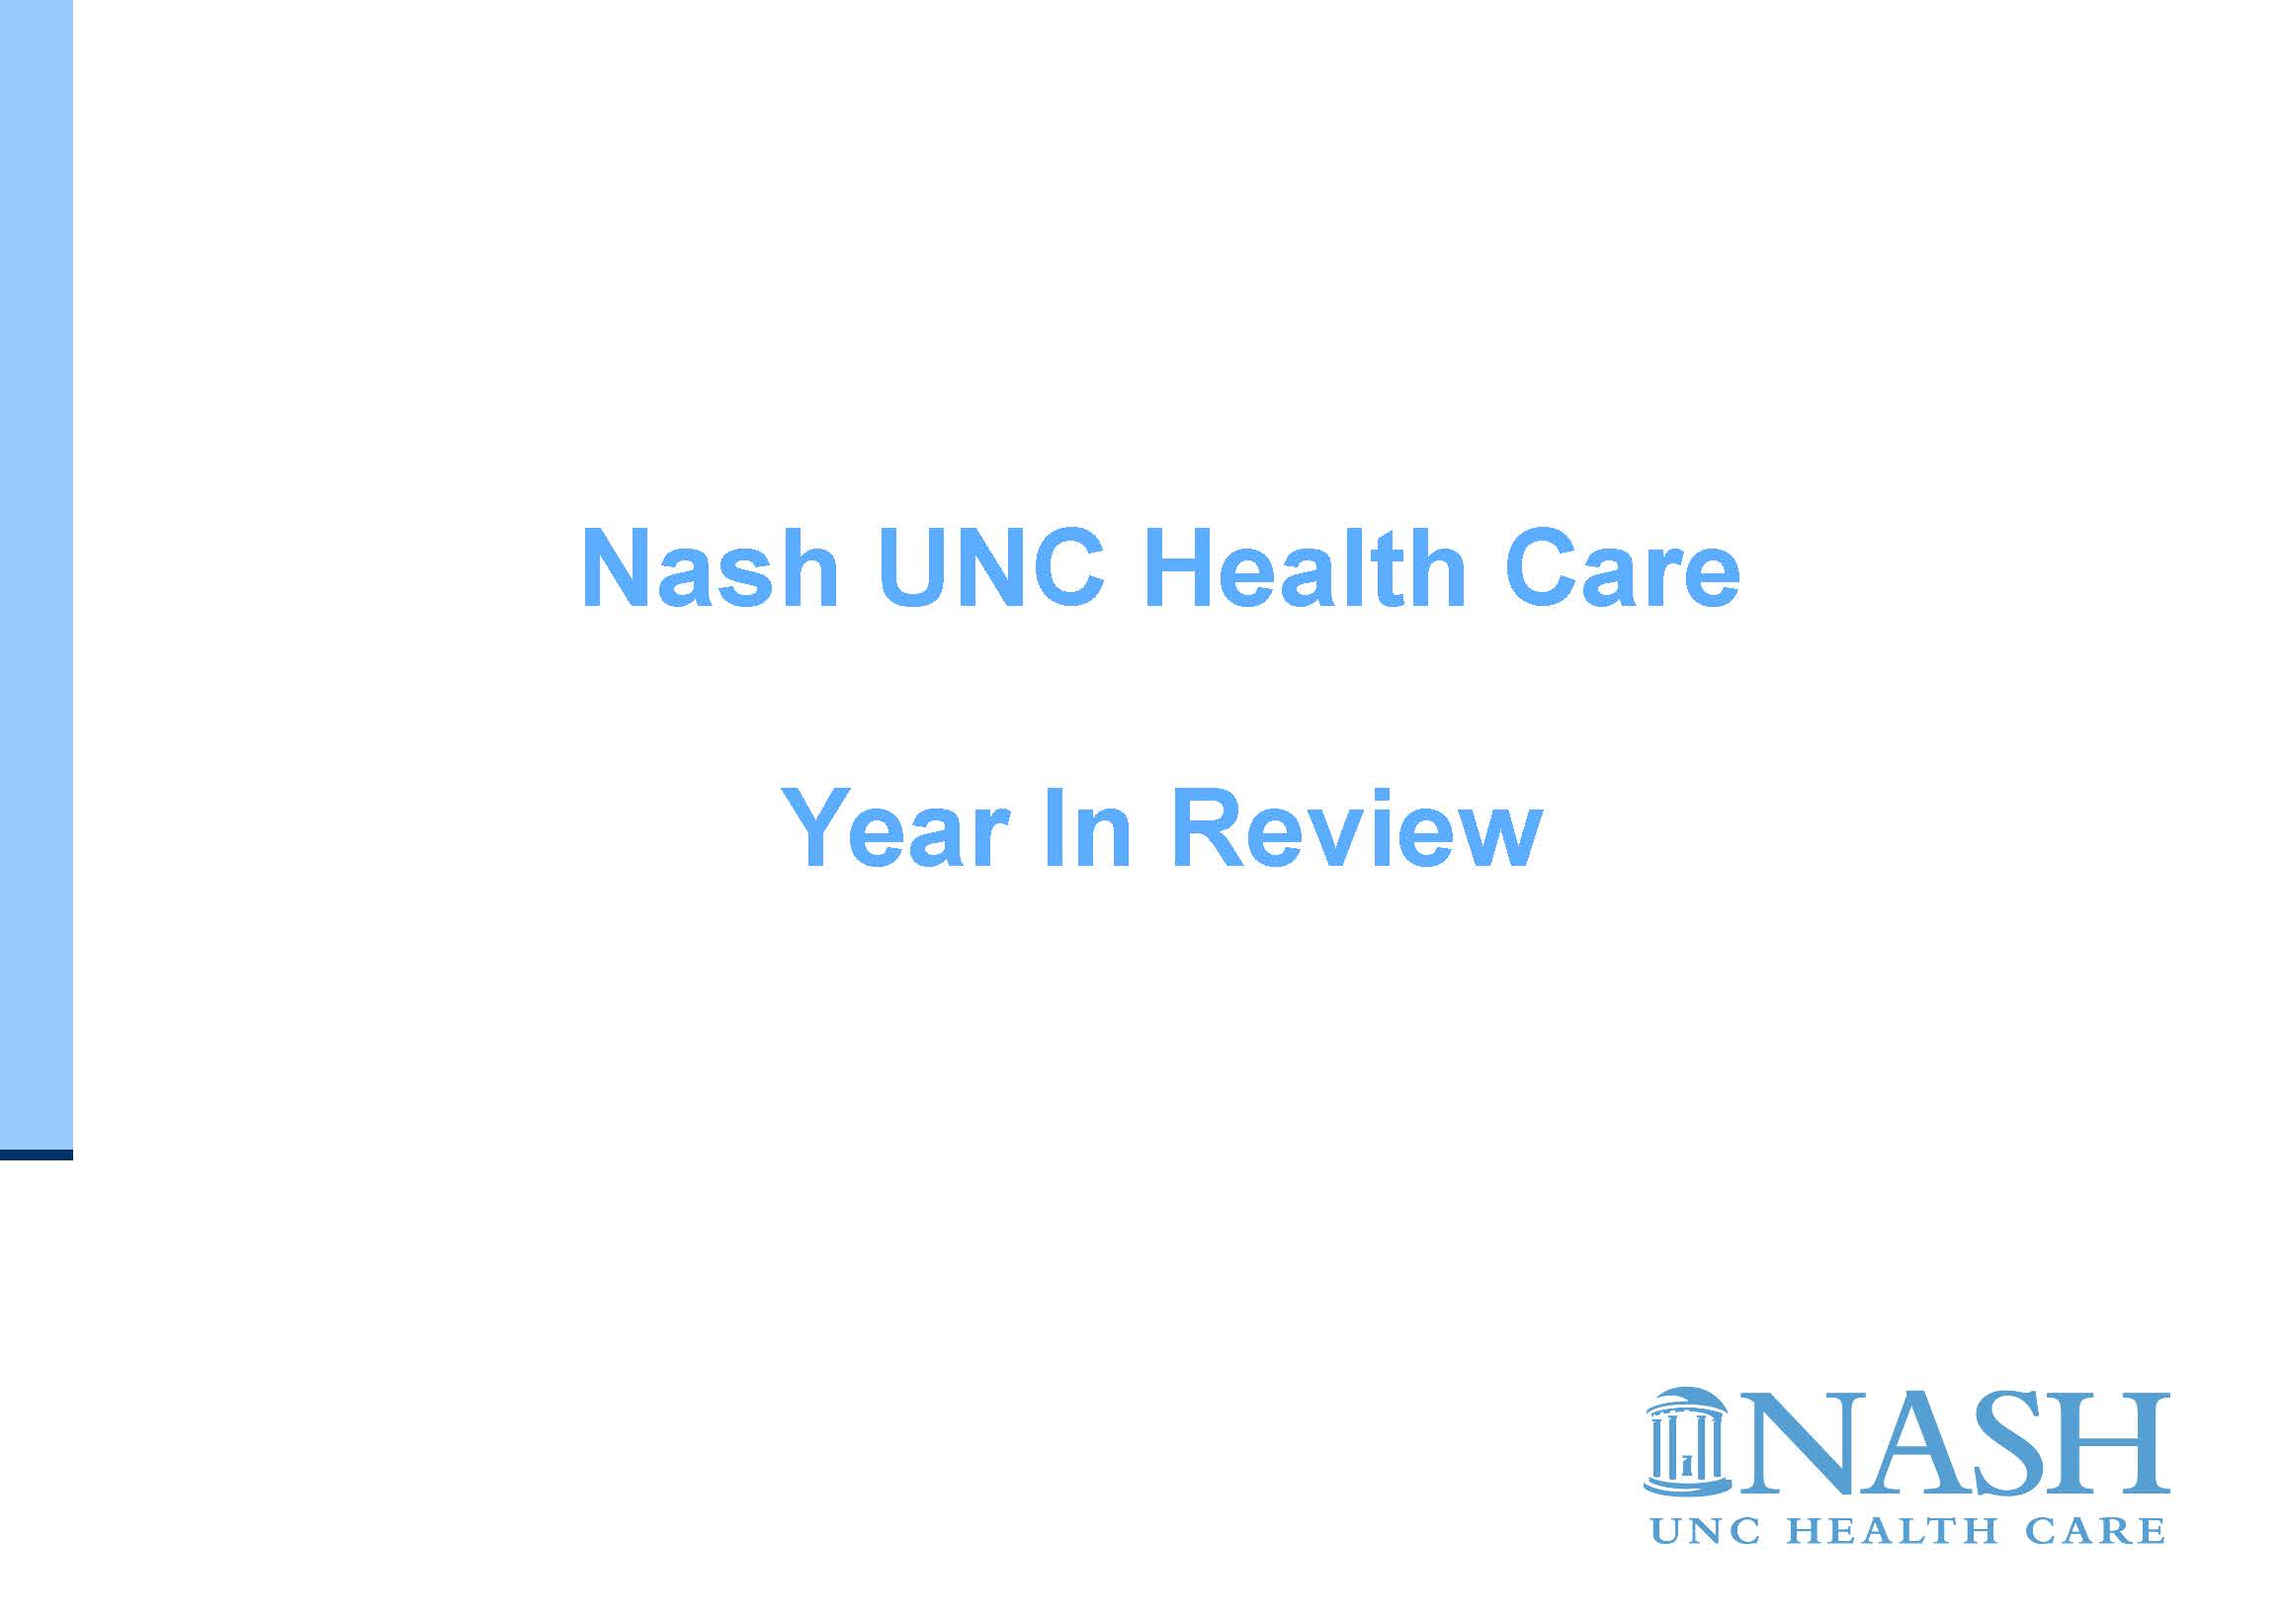 Nash UNC Year In Review